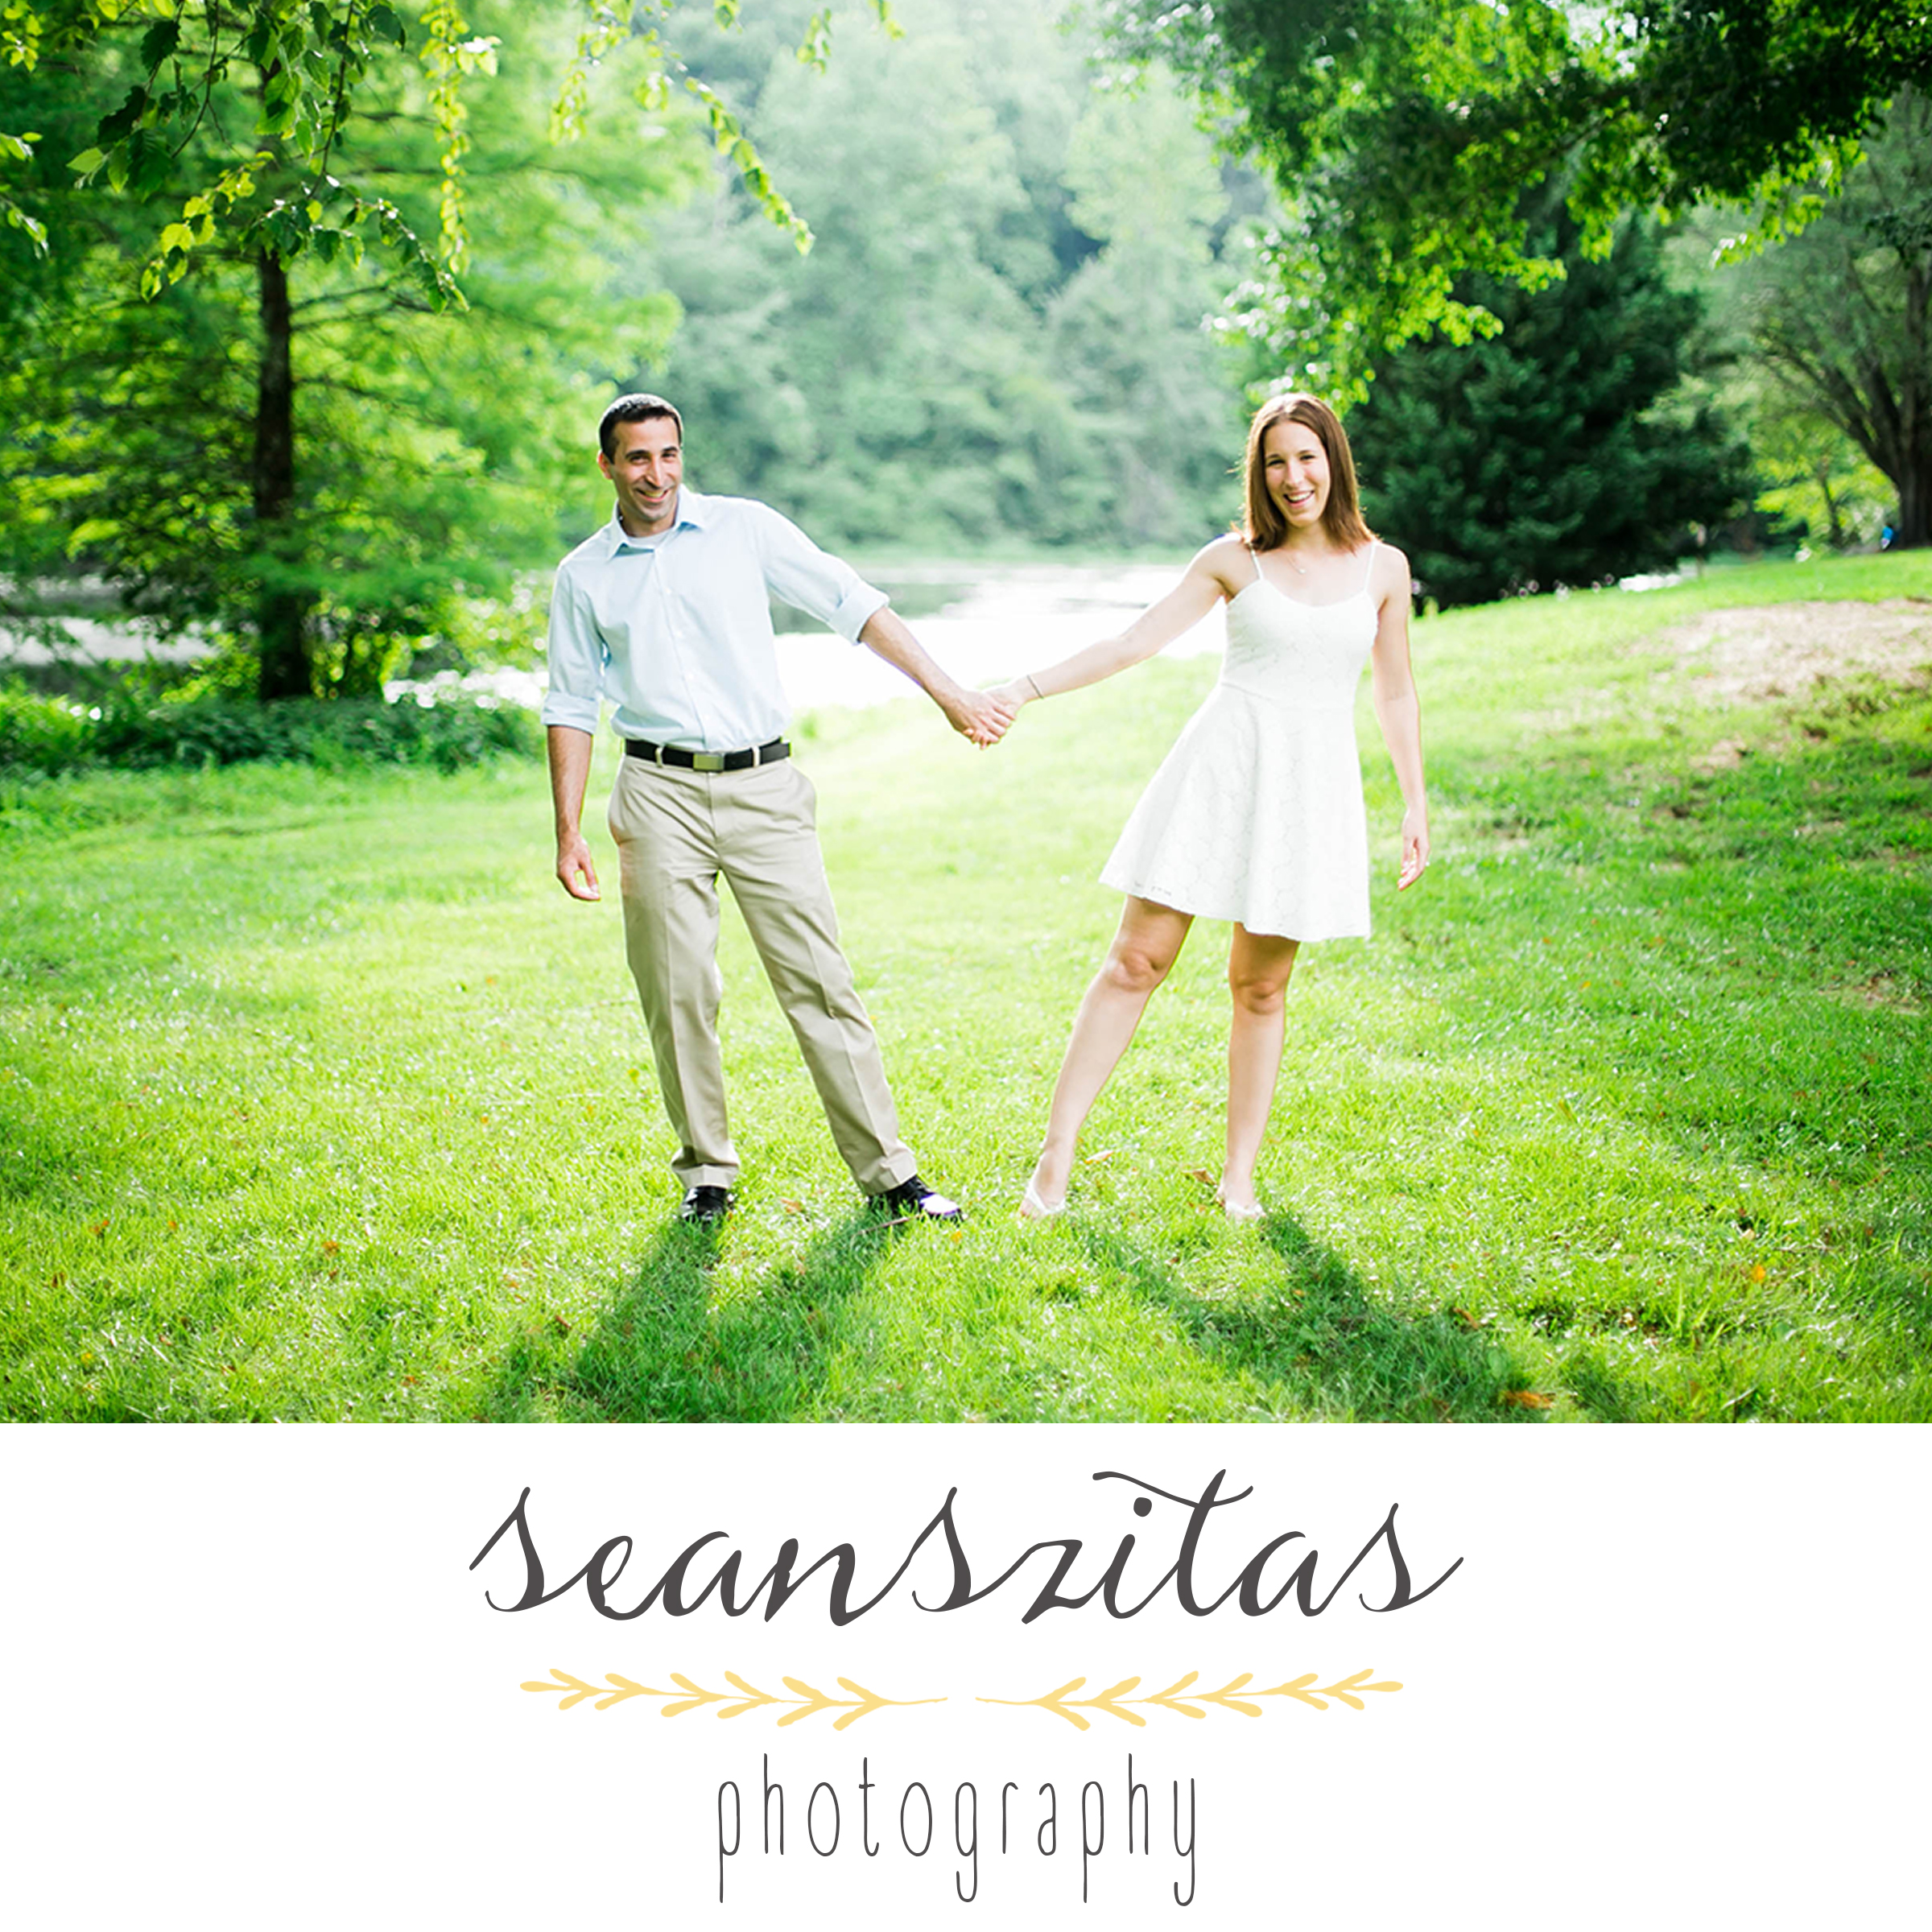 sean szitas photography, greensboro north carolina